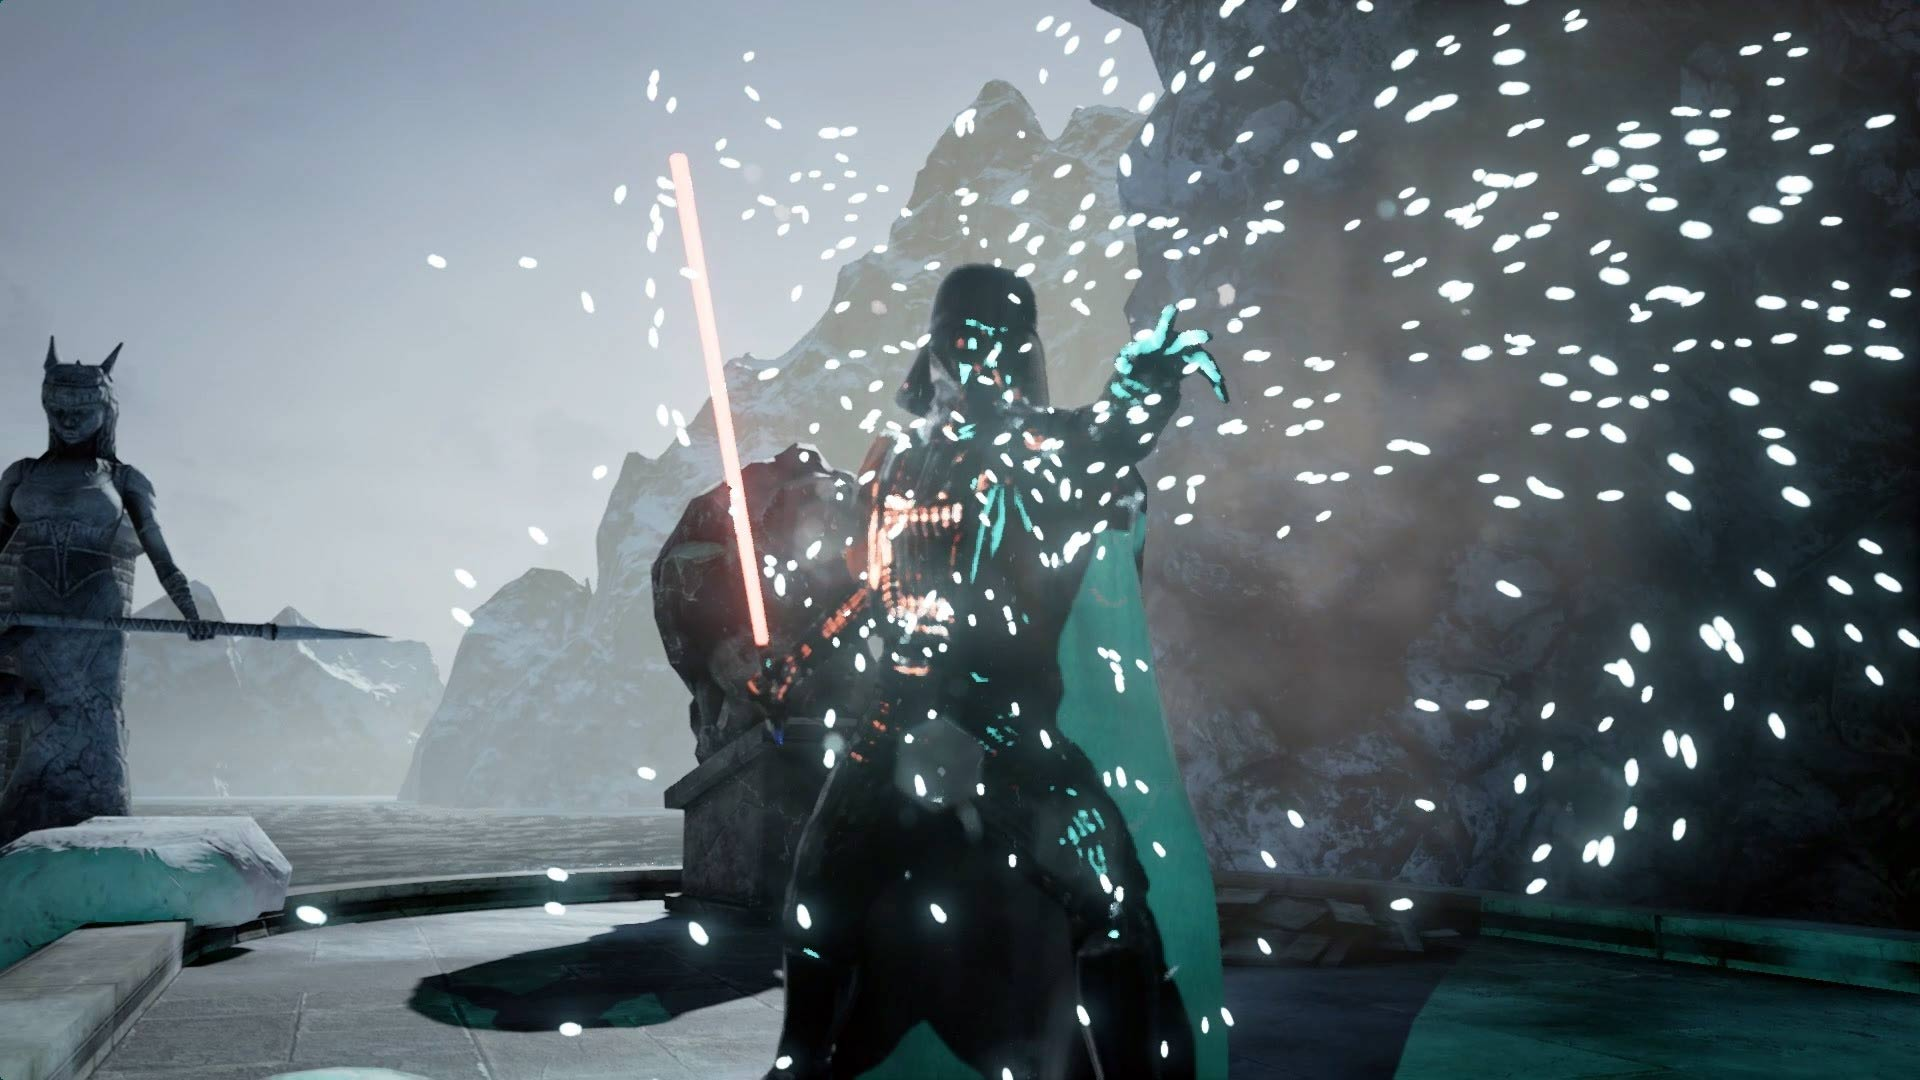 Darth Vader i Unreal Engine 4